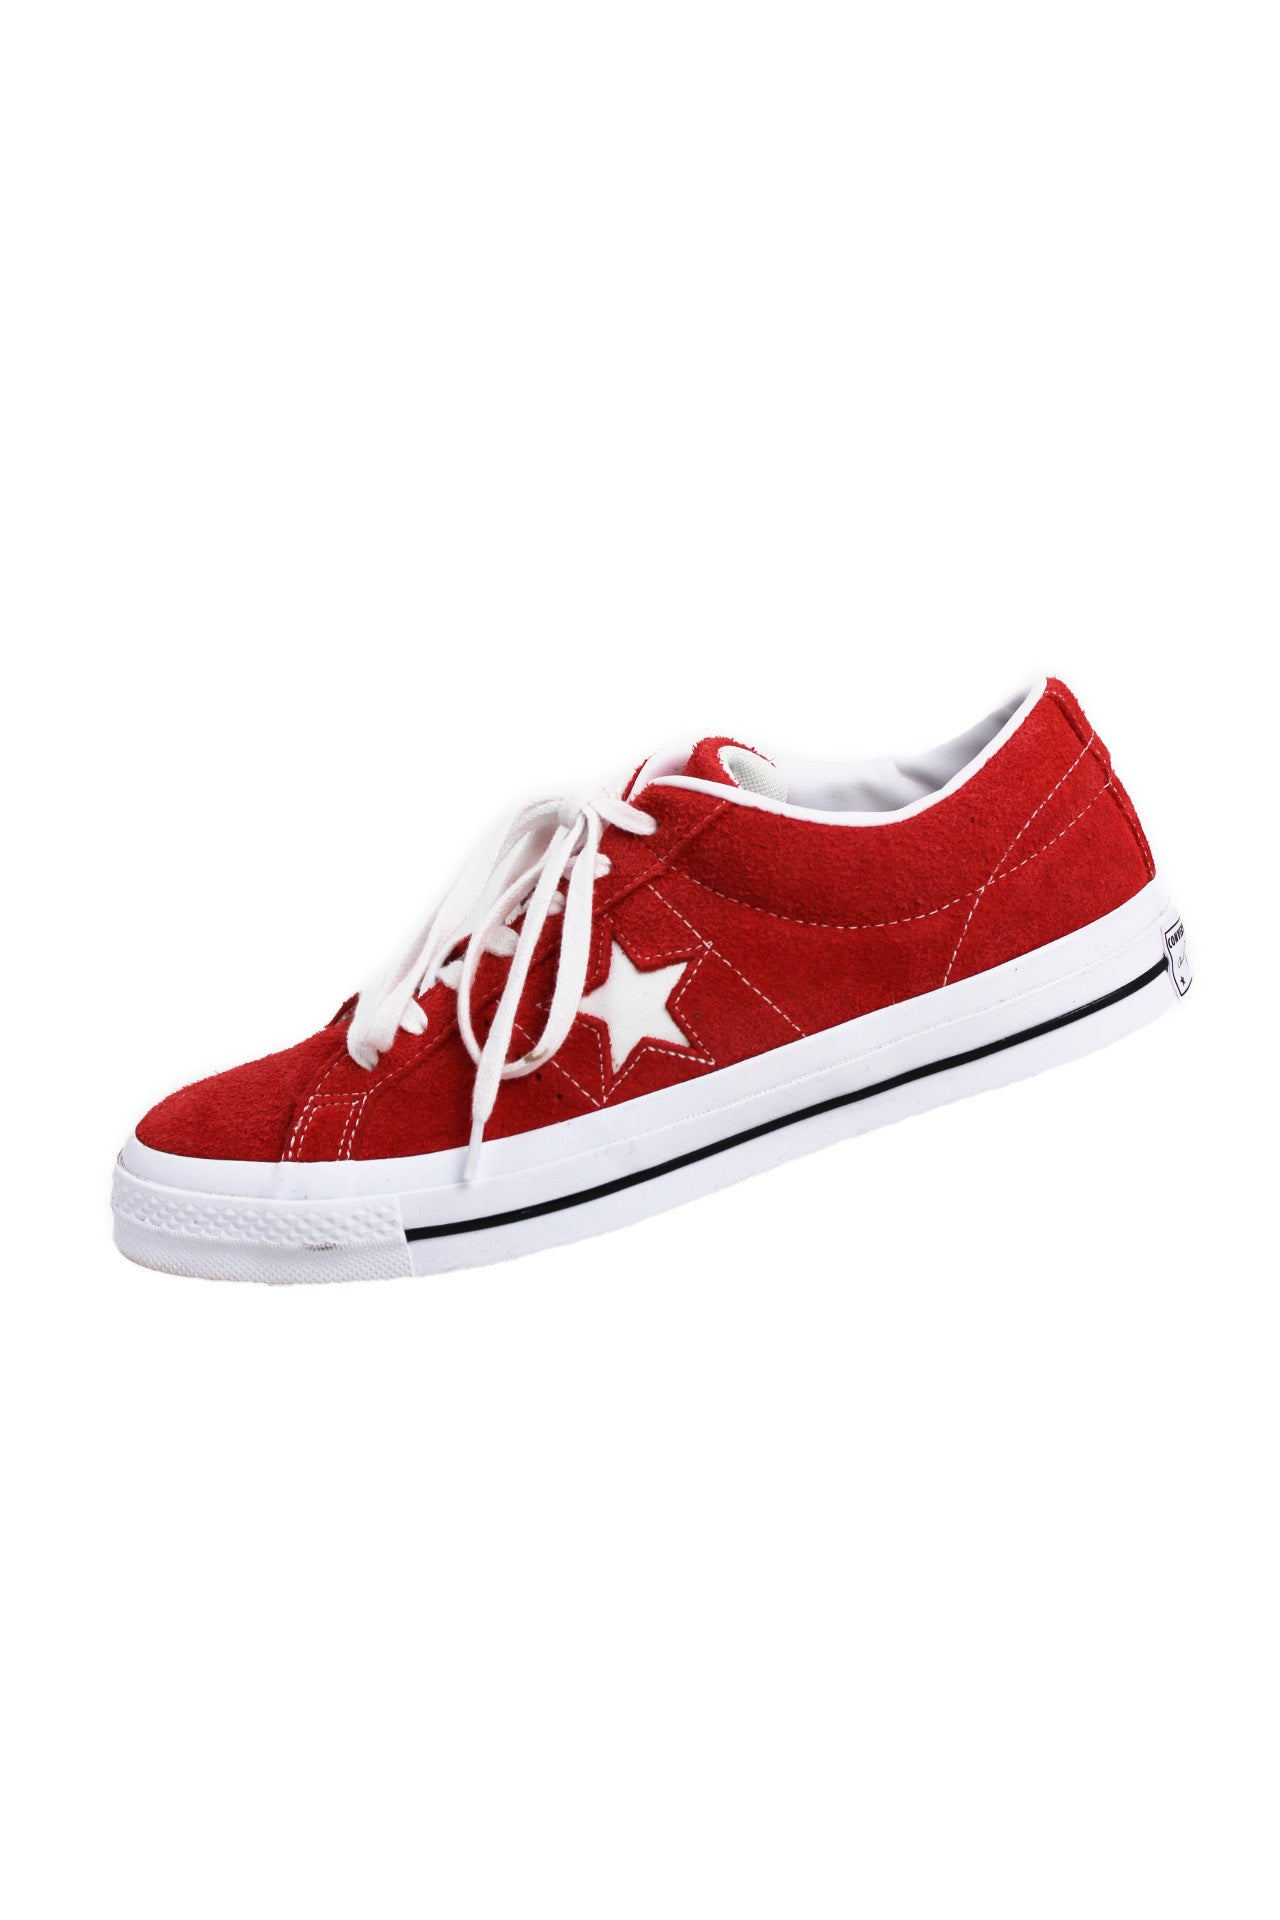 converse red suede low top sneakers. features classic converse red suede upper, white rubber soles, white laces and interior.